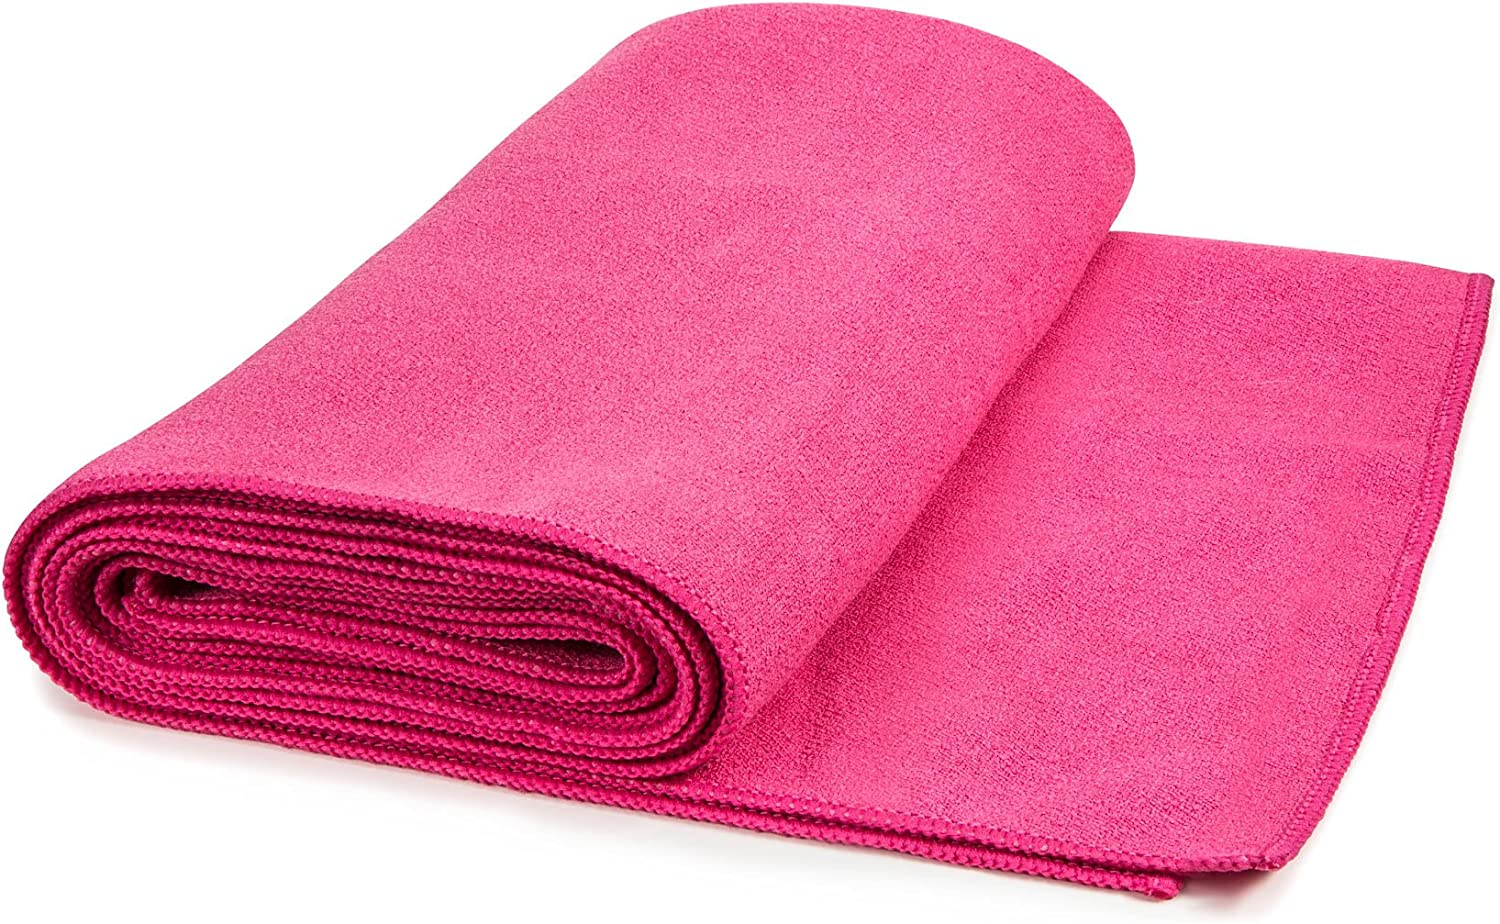 Hot Yoga Mat Towel Non-Slip, Extra-Absorbent Microfiber Anti-Bacterial Skidless Bikram Towels Cover for Exercise Workout, Fitness and Pilates or Beach ...